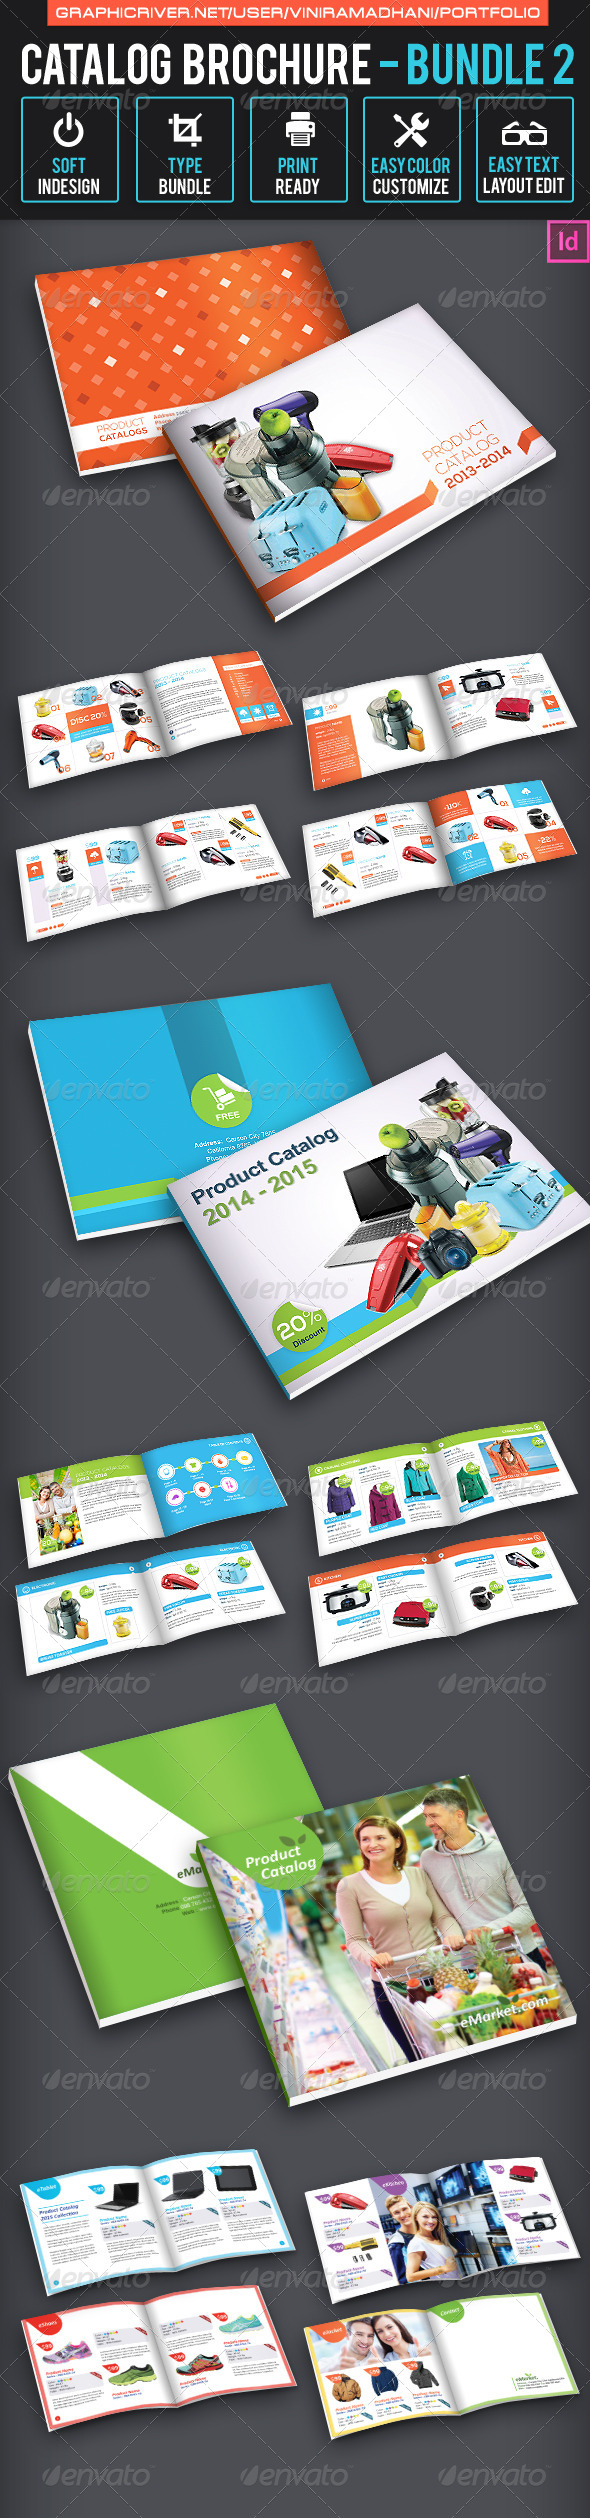 Catalog Brochure Bundle 2